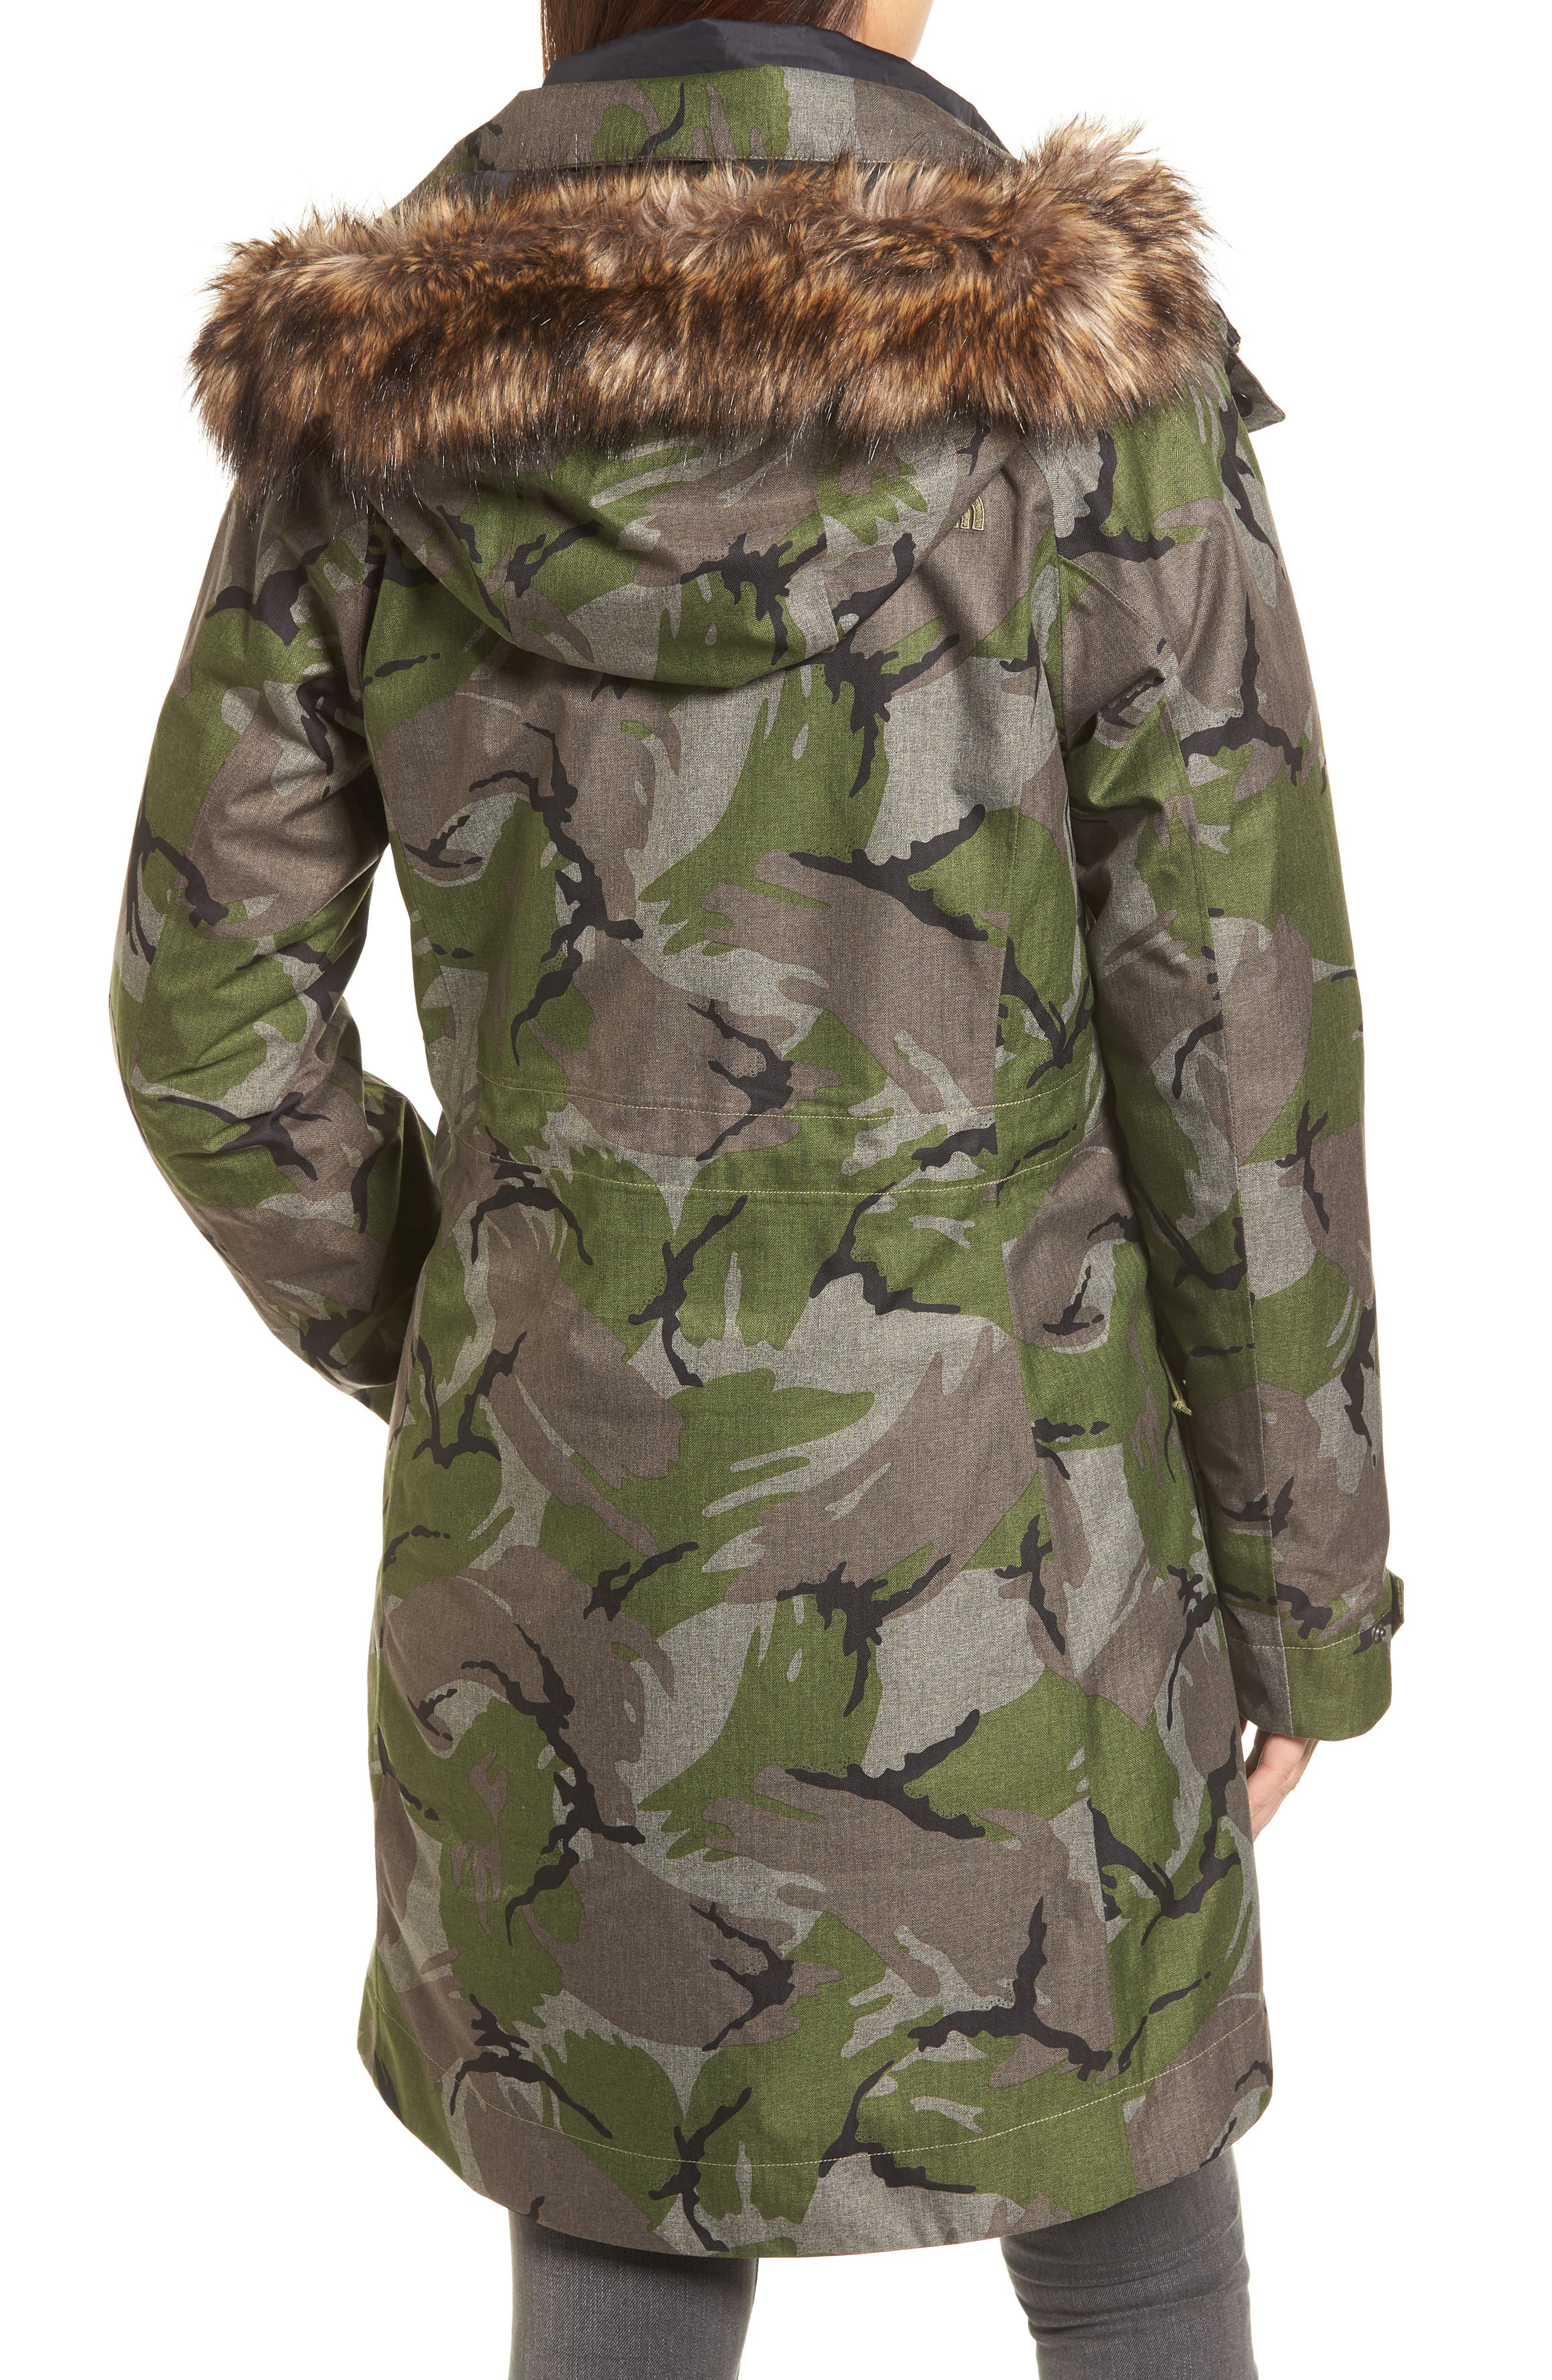 Outer Boroughs 3-in-1 TriClimate<sup>®</sup> Waterproof Jacket with Faux Fur Trim,                             Alternate thumbnail 2, color,                             Burnt Olive Green Disrupt Camo